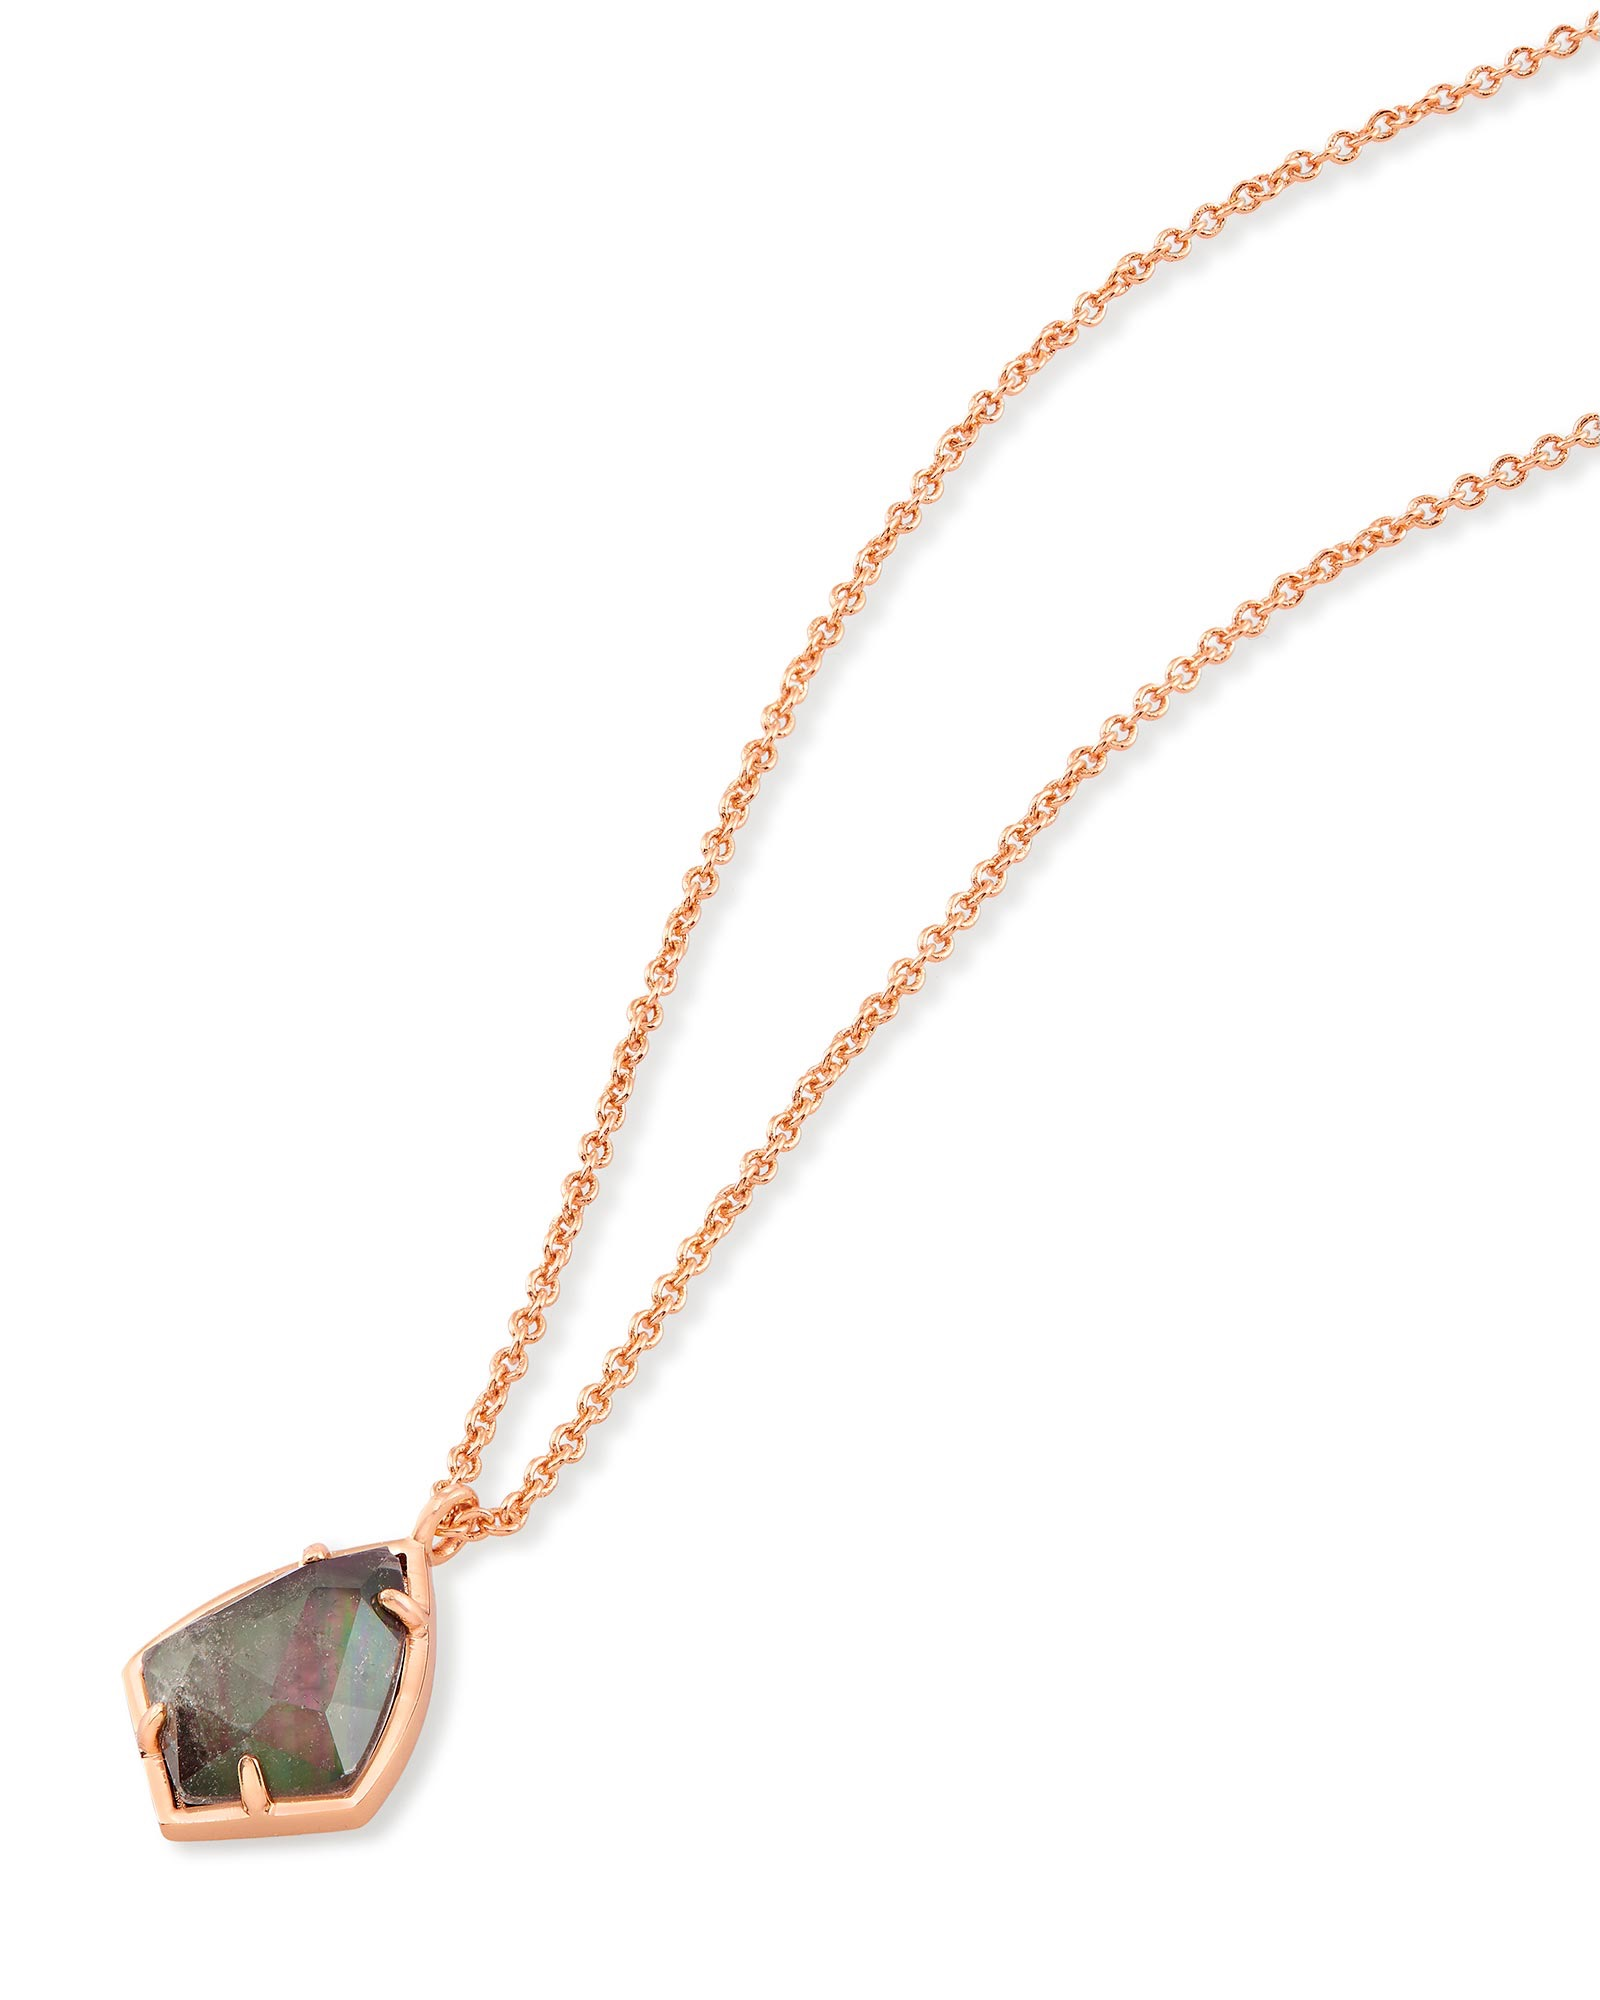 Cory Pendant Necklace in Crystal Gray Illusion